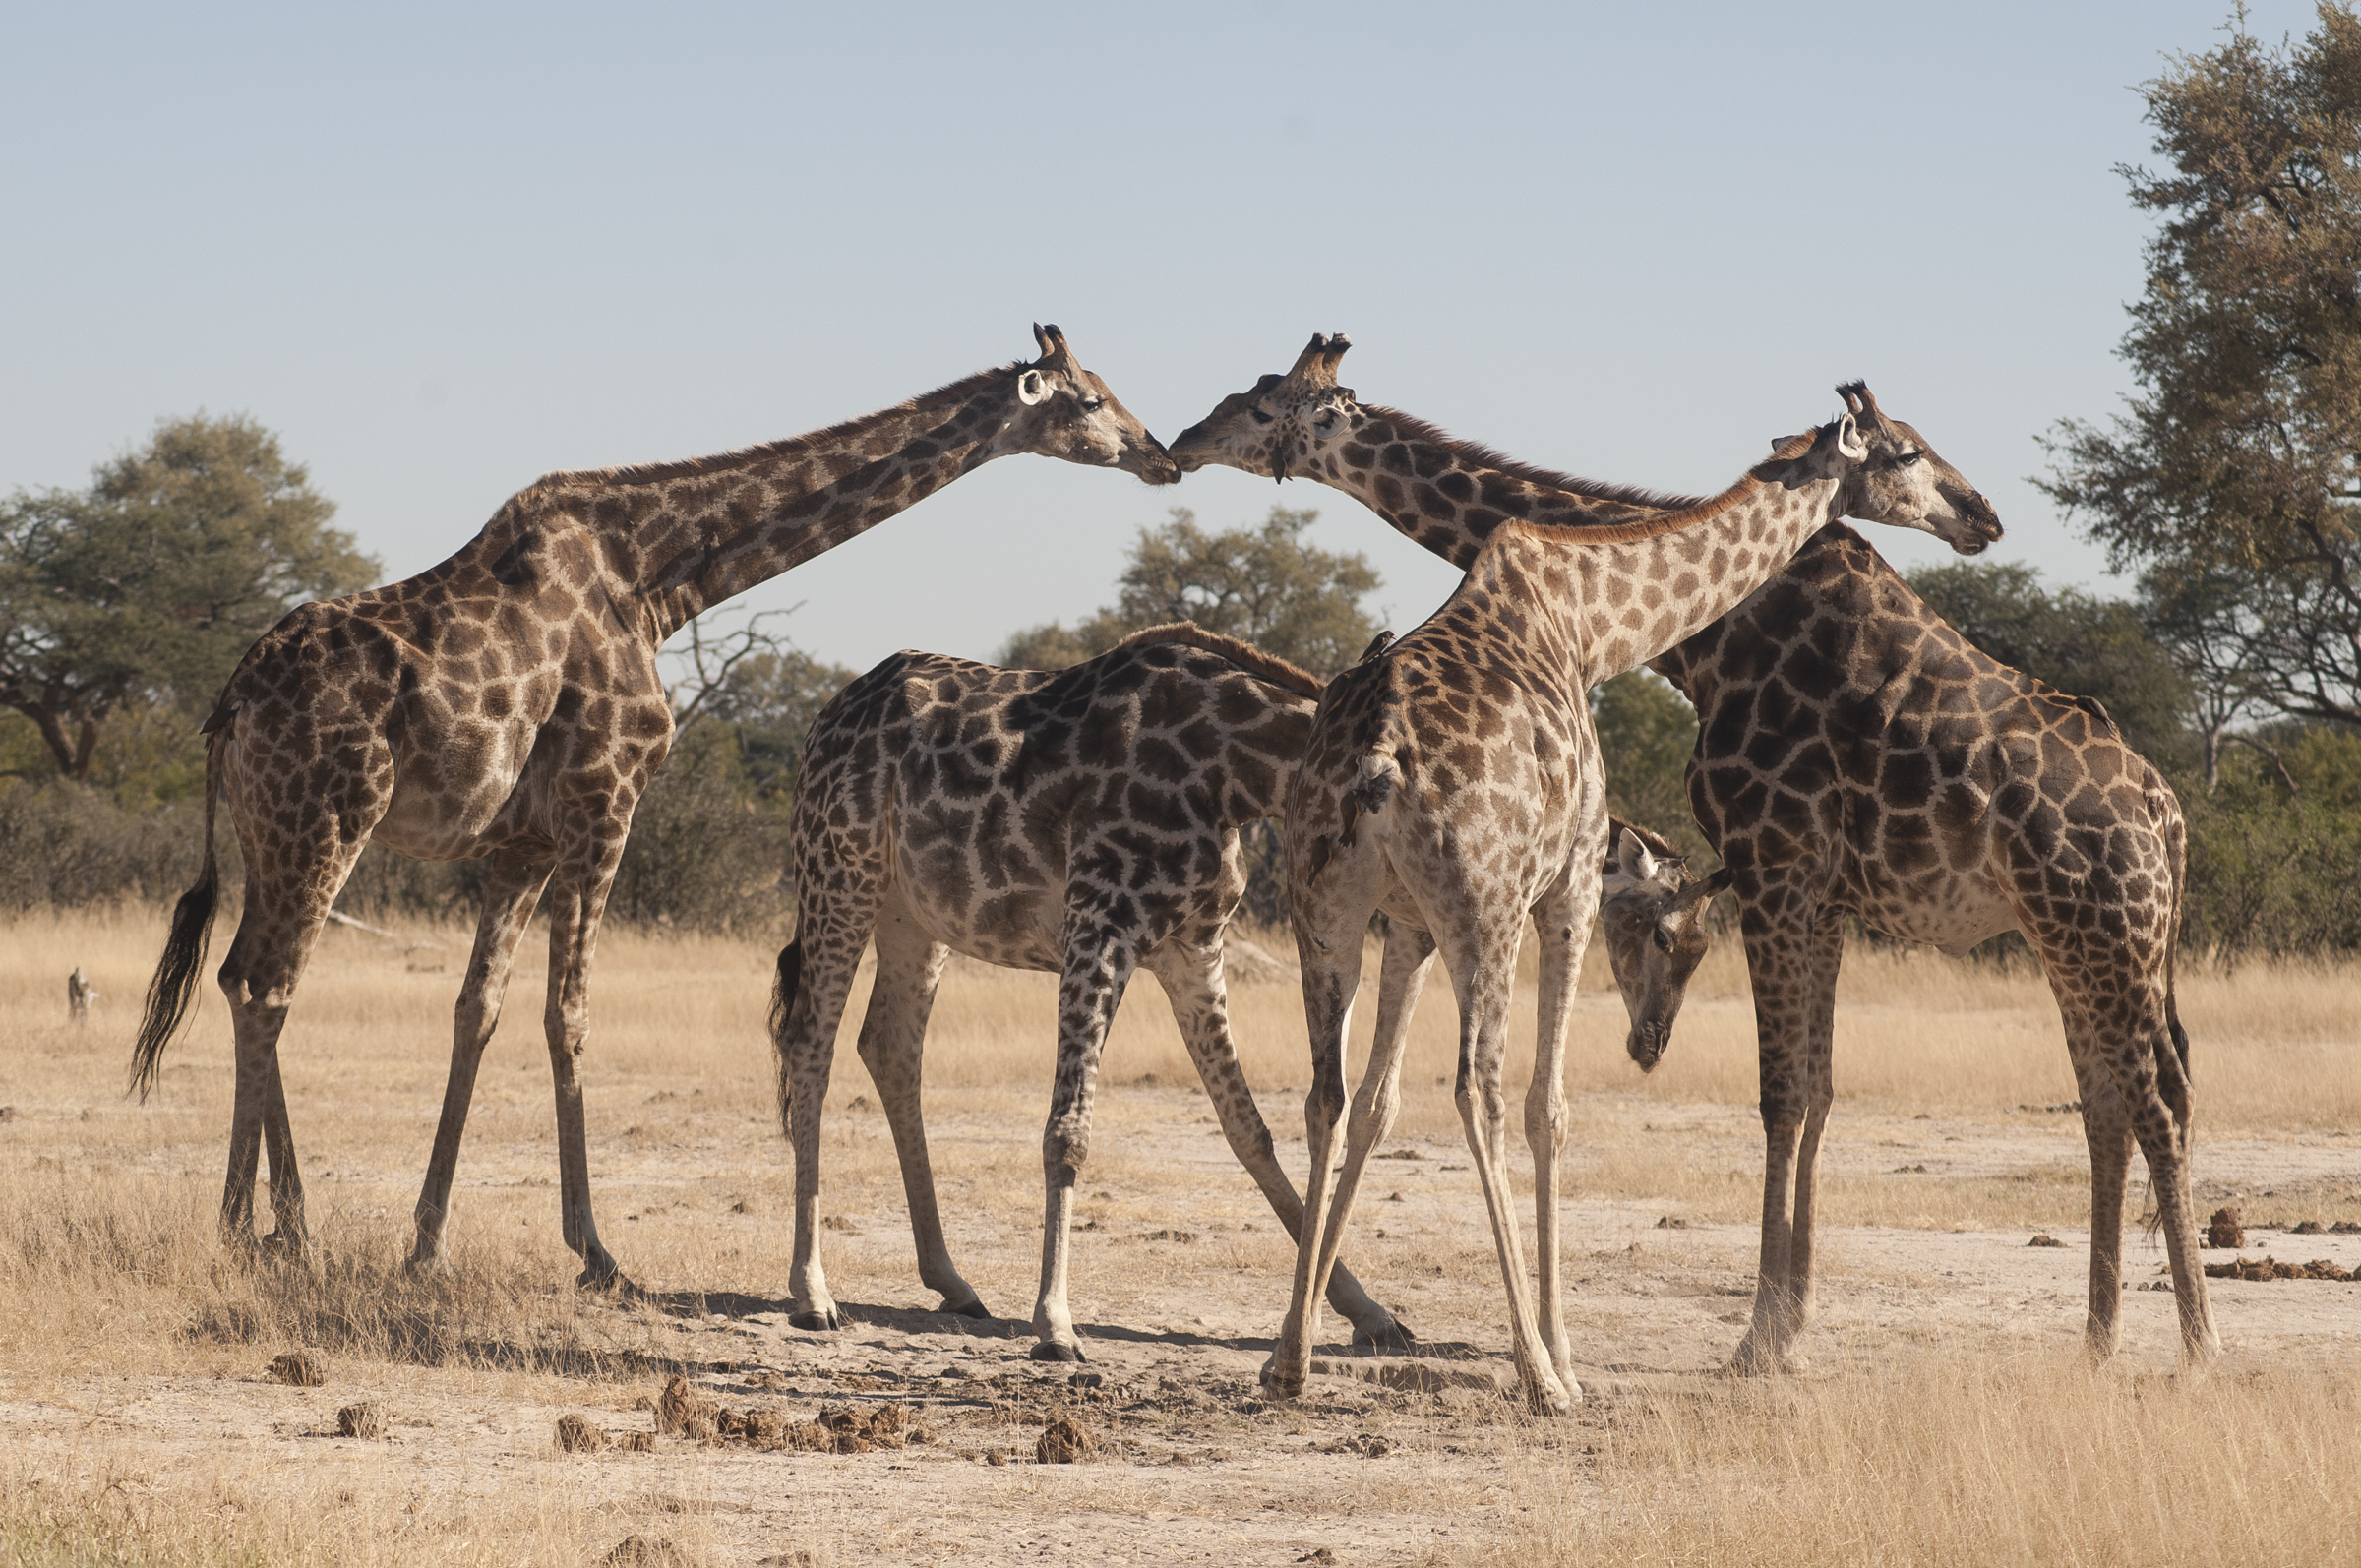 Southern-giraffe-subspecies-South-African-giraffe-Anton-Crone